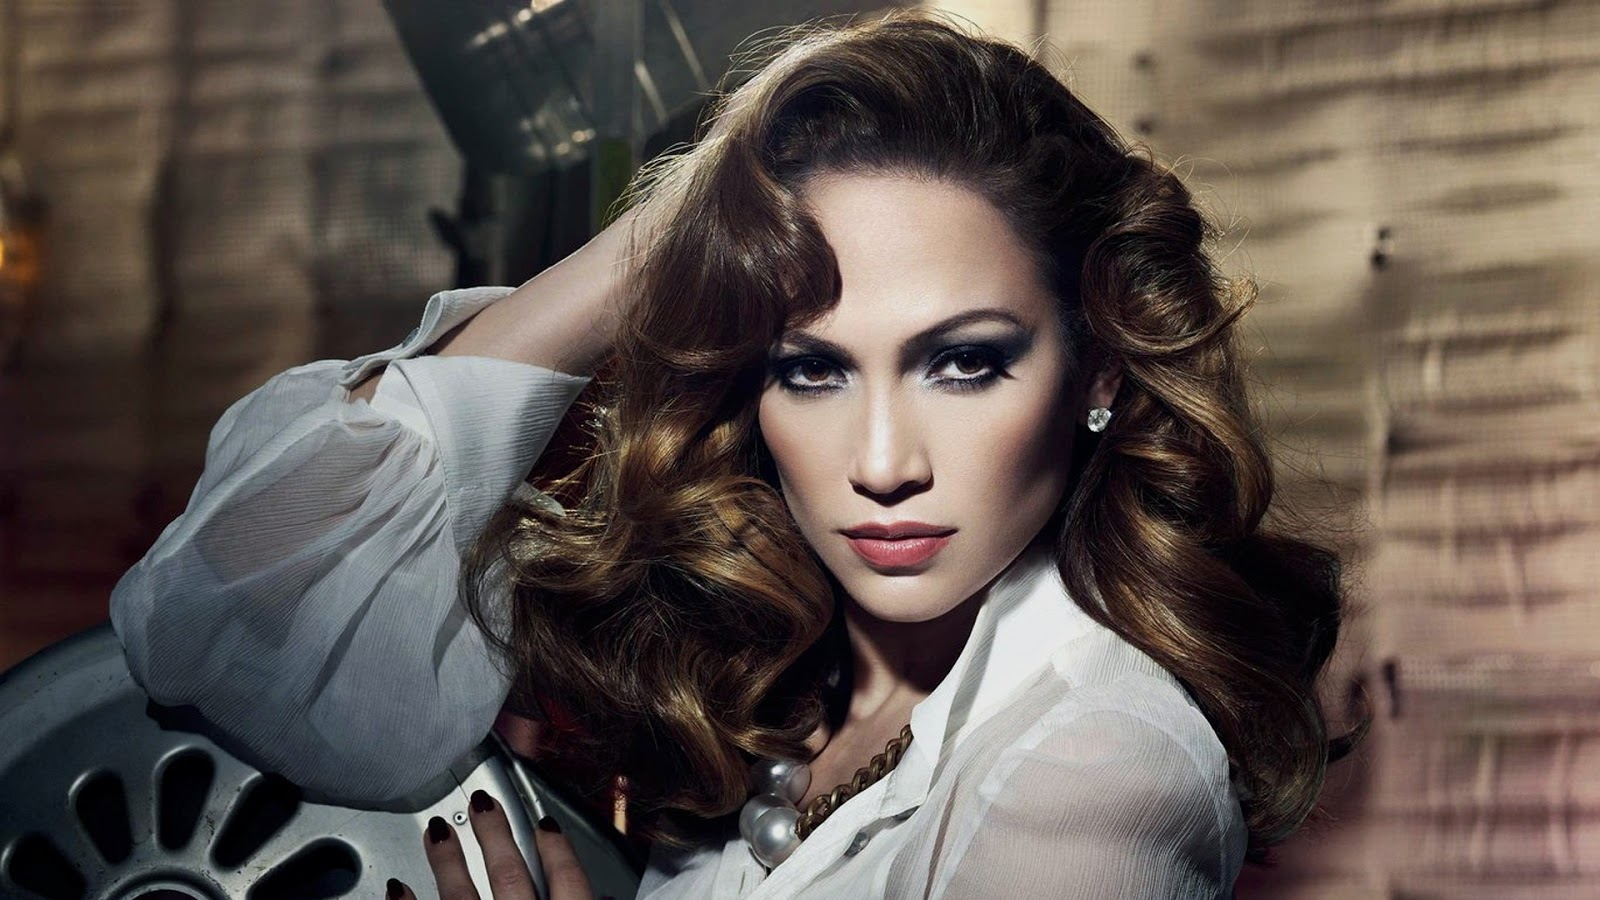 Wallpaper Collections Jennifer Lopez Hd Wallpapers